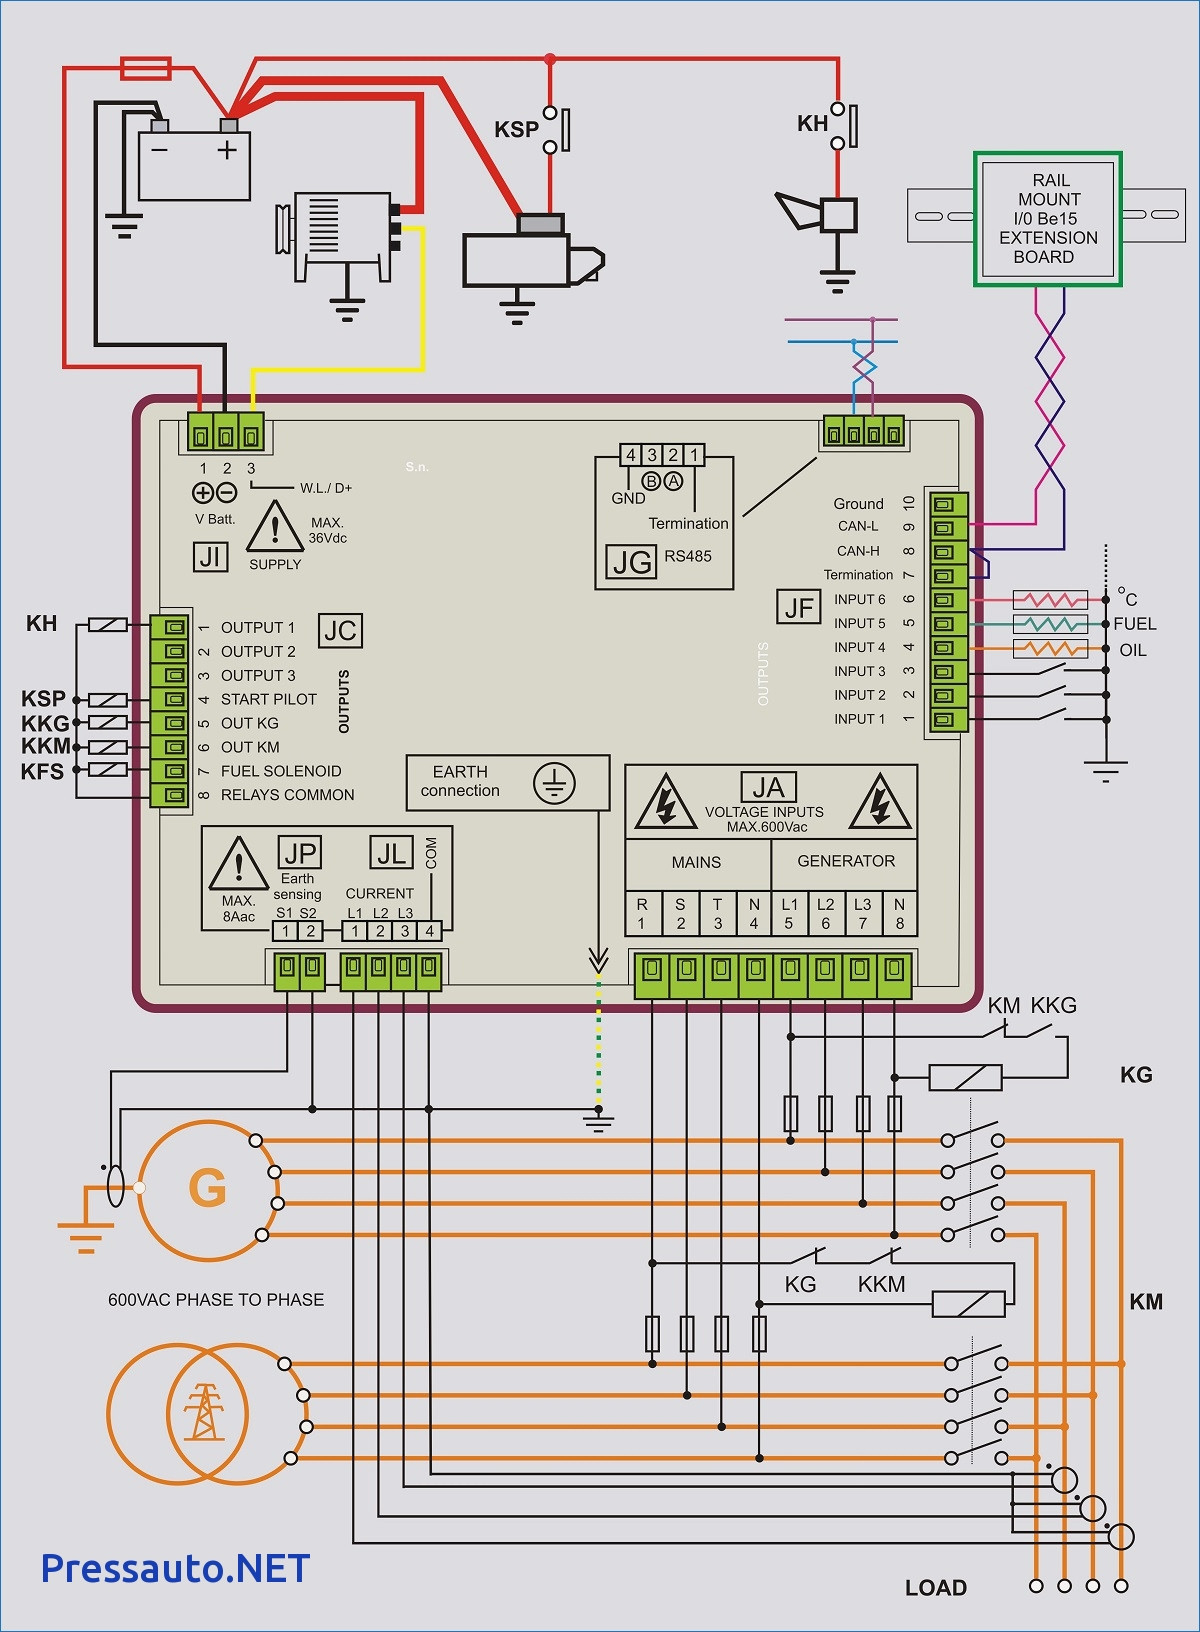 Generator Automatic Transfer Switch Wiring Diagram Generac With - Generator Automatic Transfer Switch Wiring Diagram